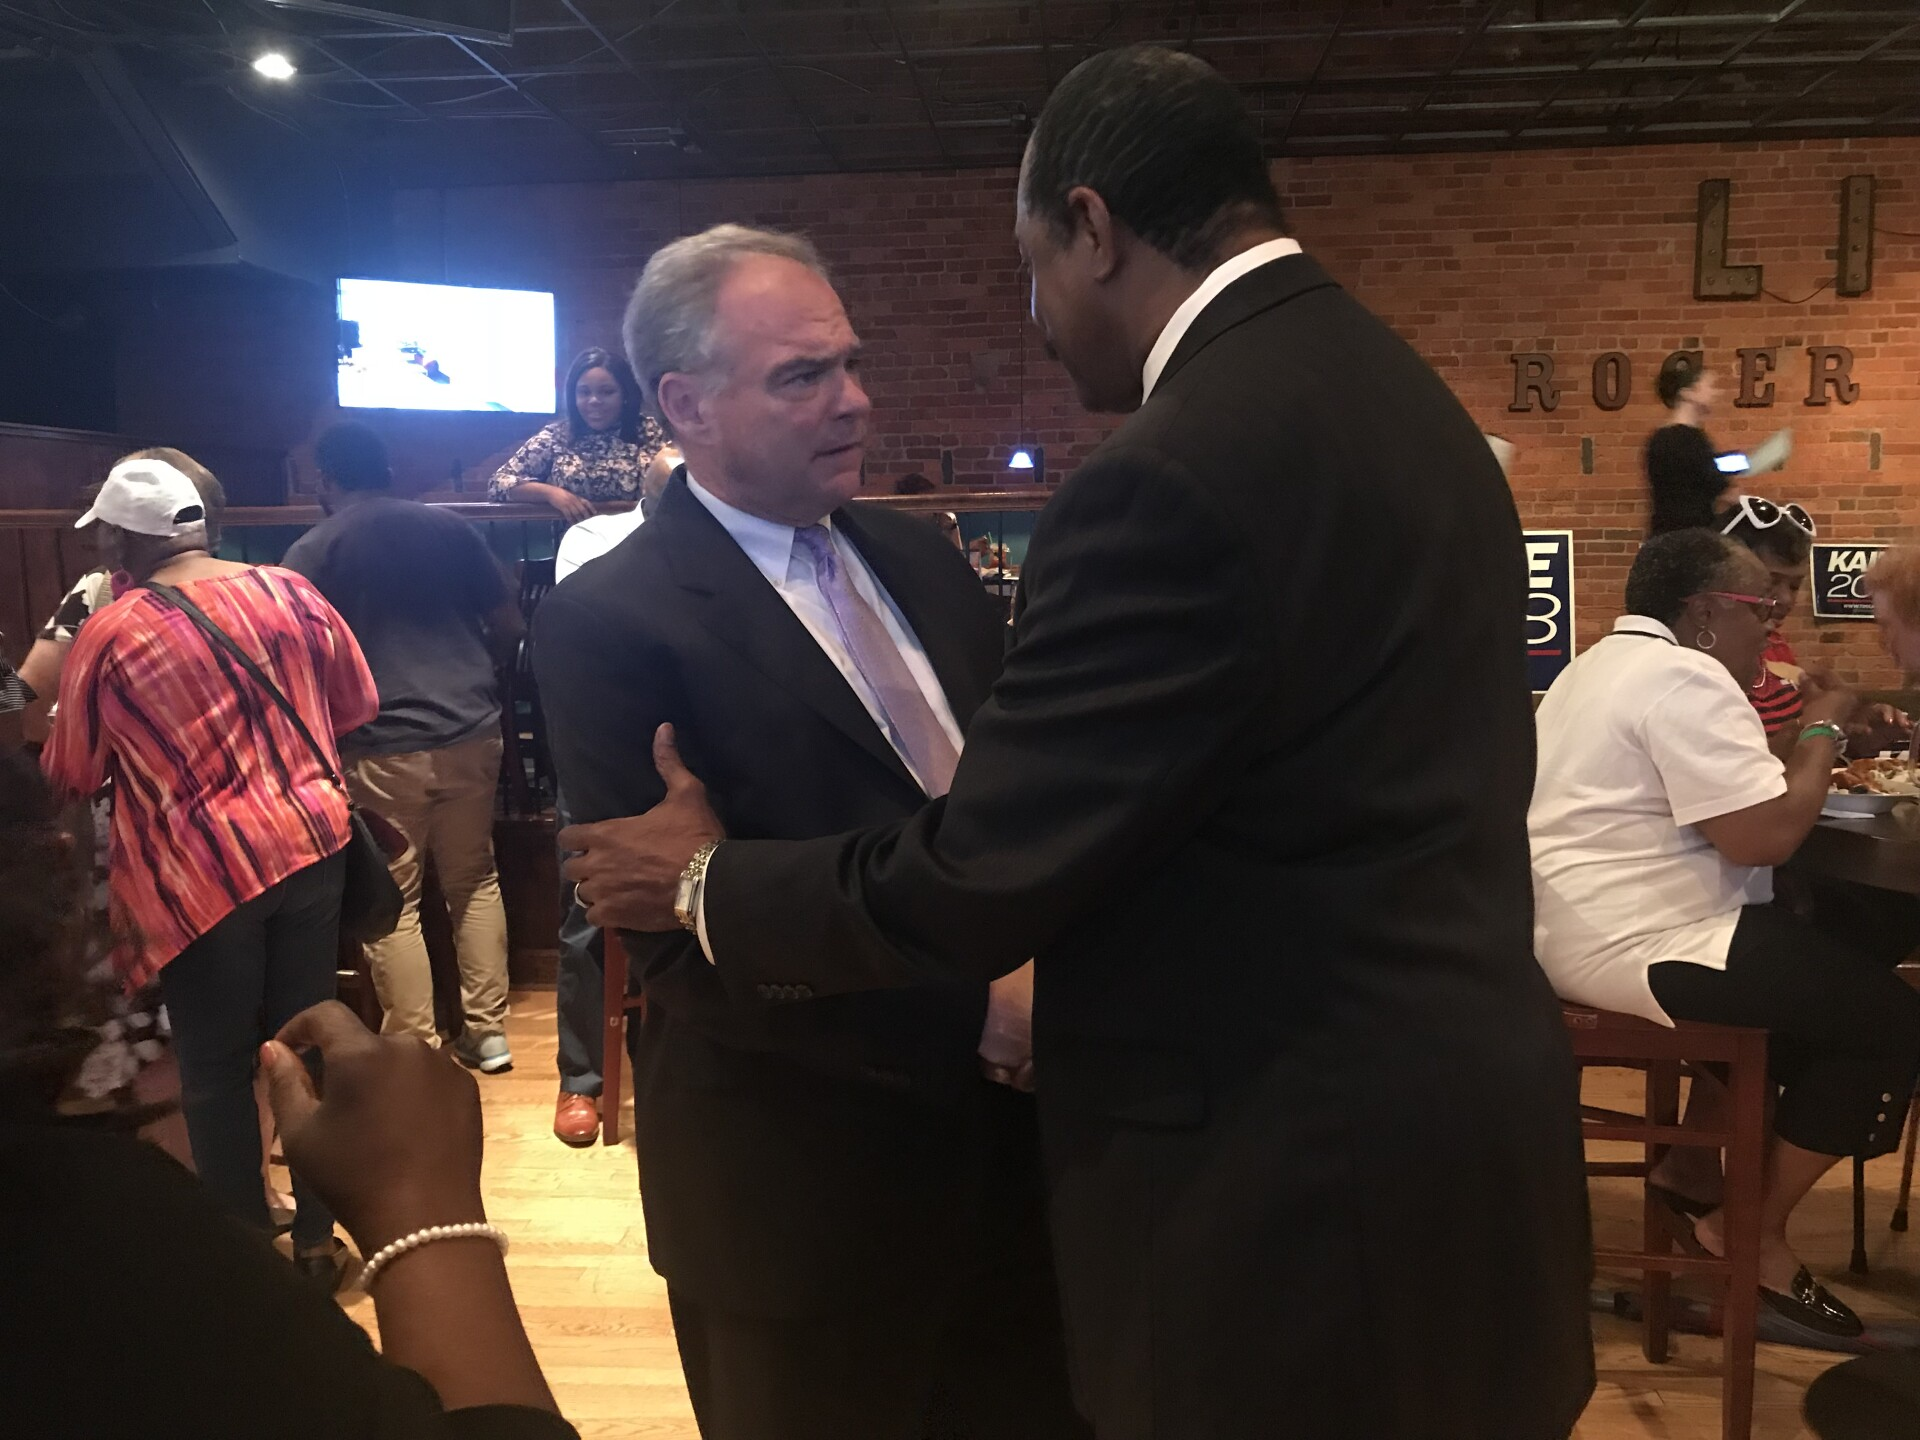 Photos: Tim Kaine hosts meet-and-greet at Portsmouth restaurant ahead of midtermelections